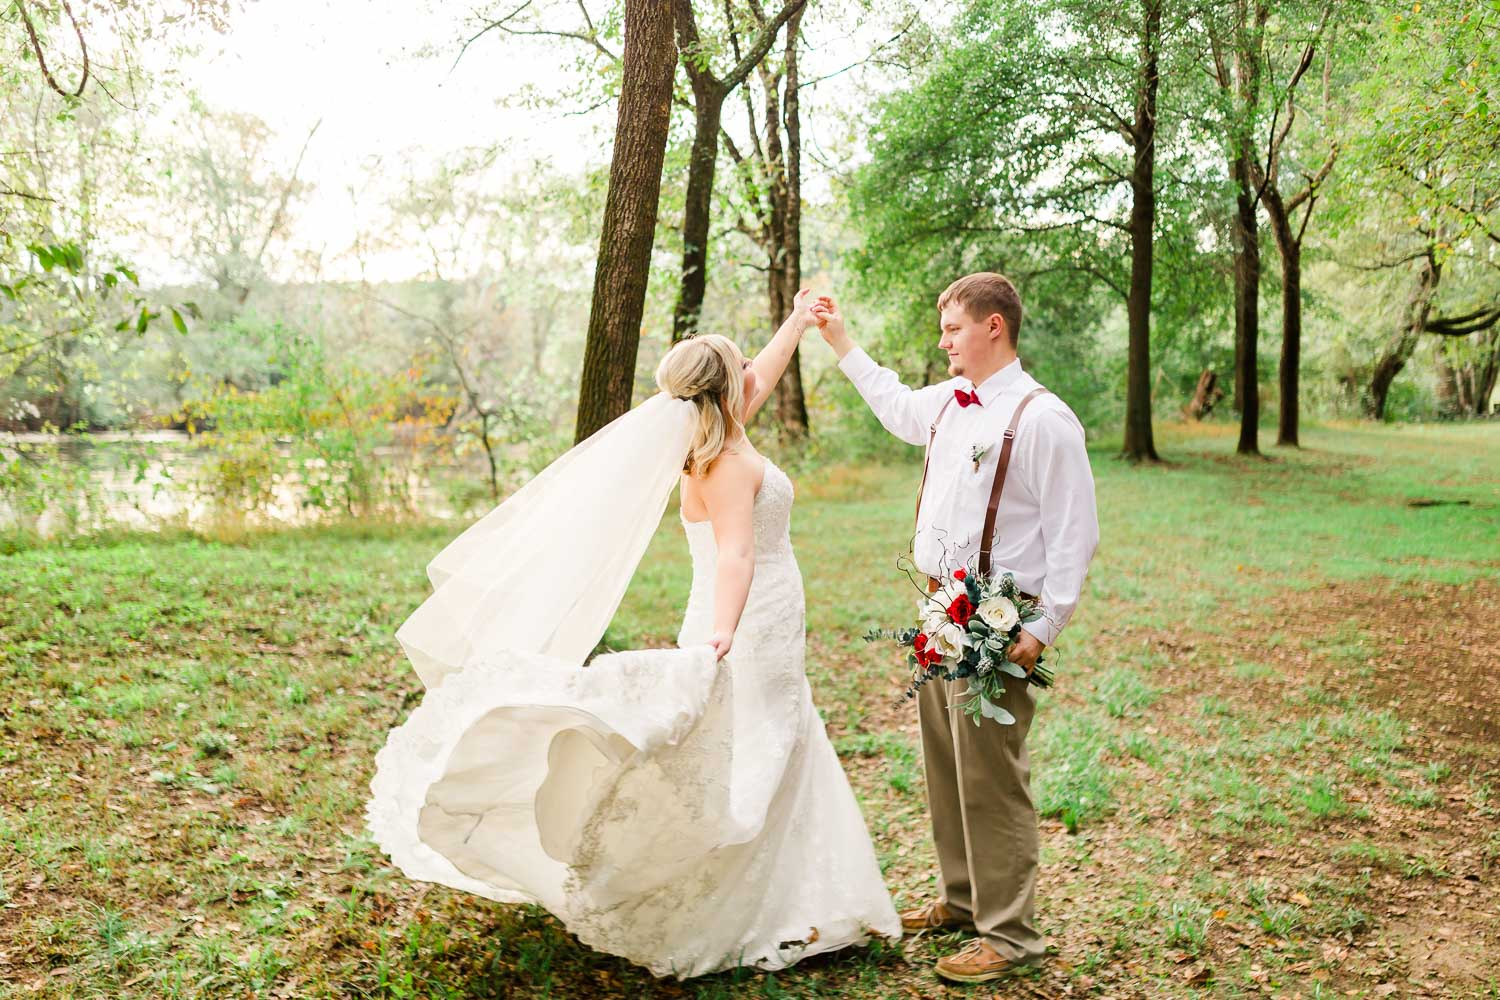 Bride and groom dancing under the riverside trees at Hiwassee River Weddings